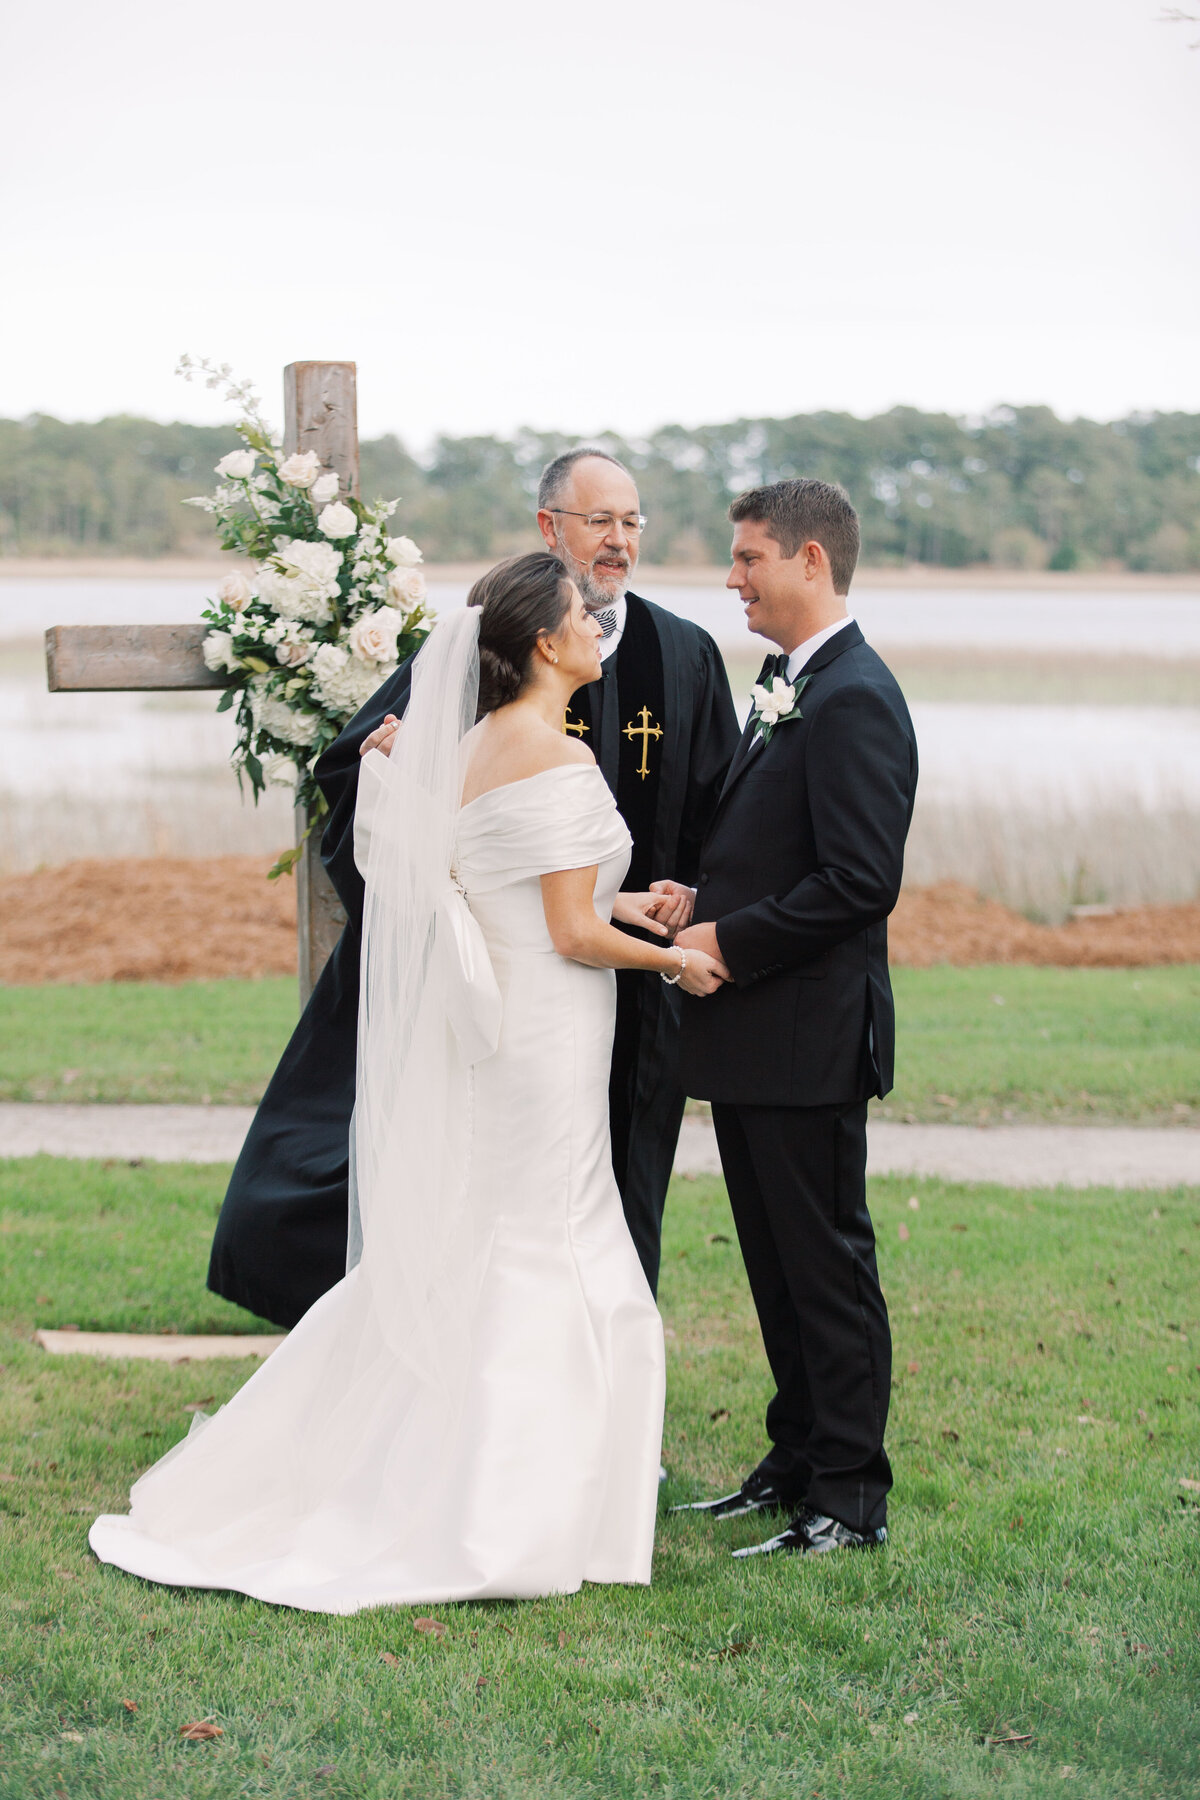 Powell_Oldfield_River_Club_Bluffton_South_Carolina_Beaufort_Savannah_Wedding_Jacksonville_Florida_Devon_Donnahoo_Photography_0622